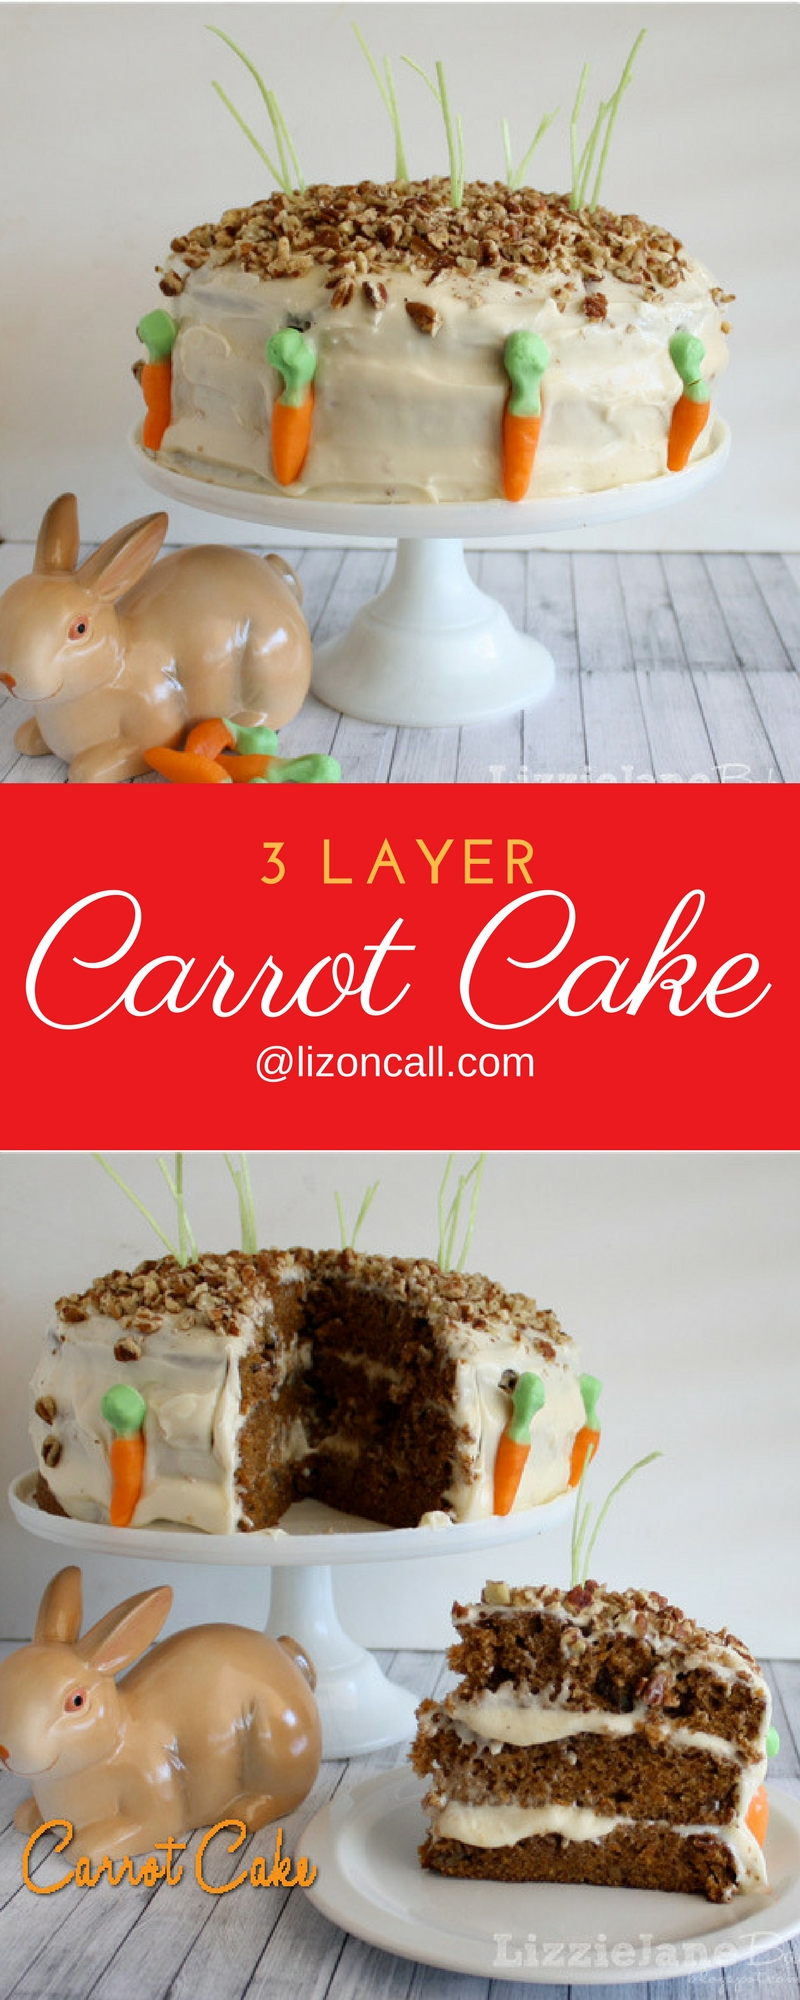 This made from scratch carrot cake recipe is 3 layers of deliciousness that is perfect for any Easter celebration.